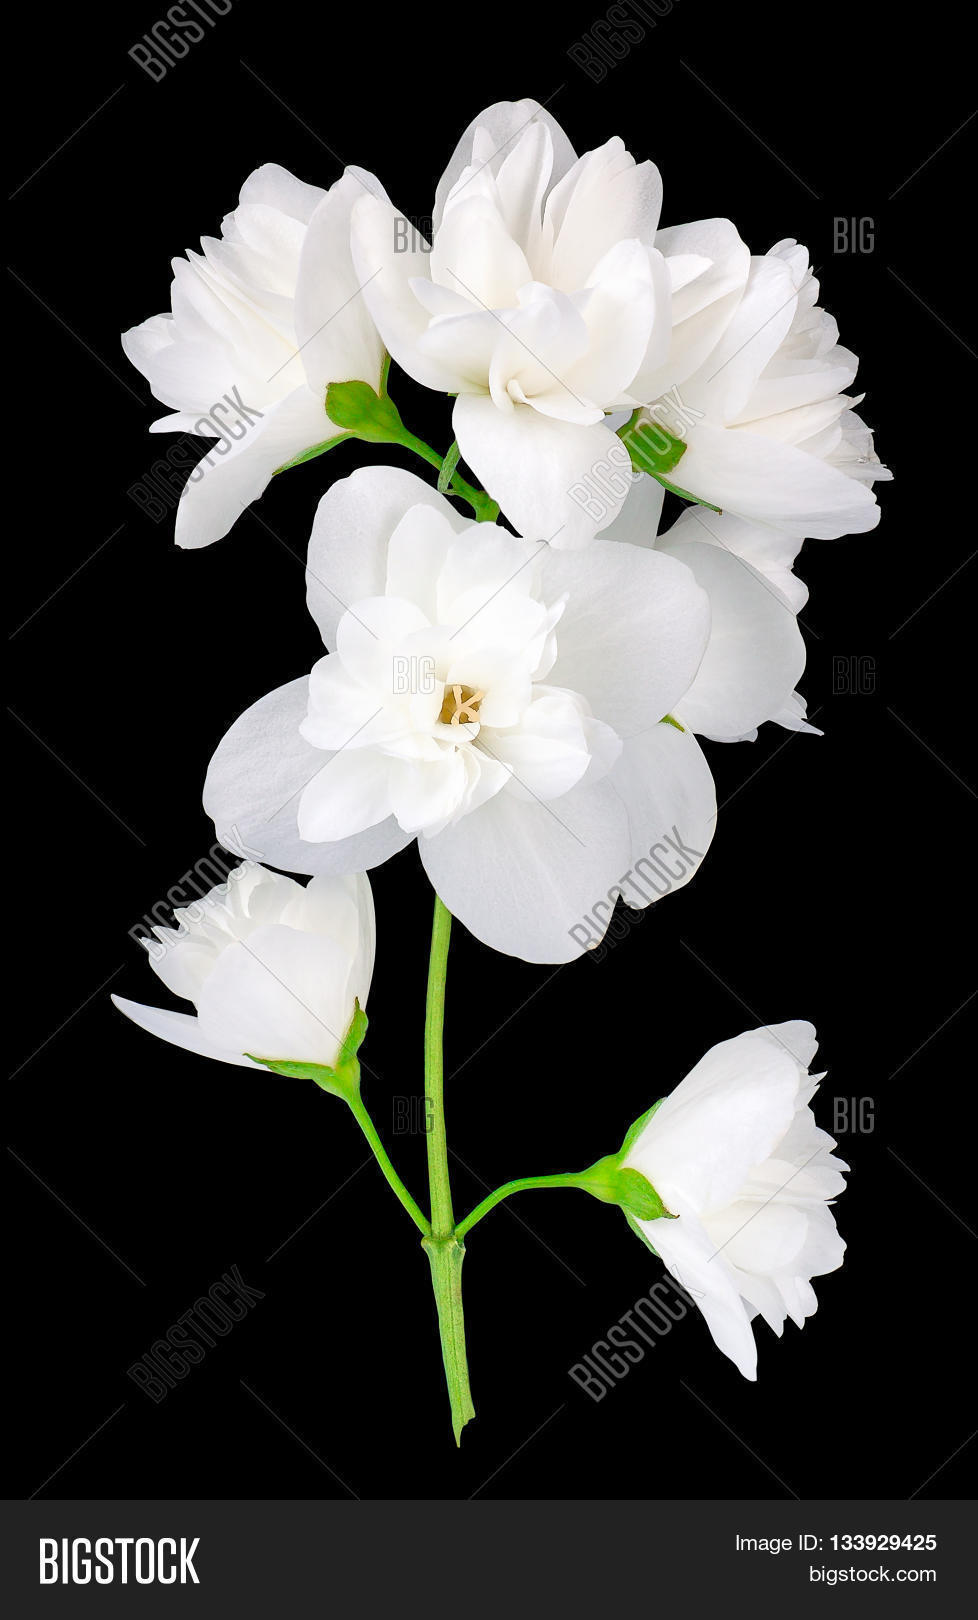 Branch jasmine flowers image photo free trial bigstock branch of jasmine flowers isolated on black background white jasmine flower jasmin branch with izmirmasajfo